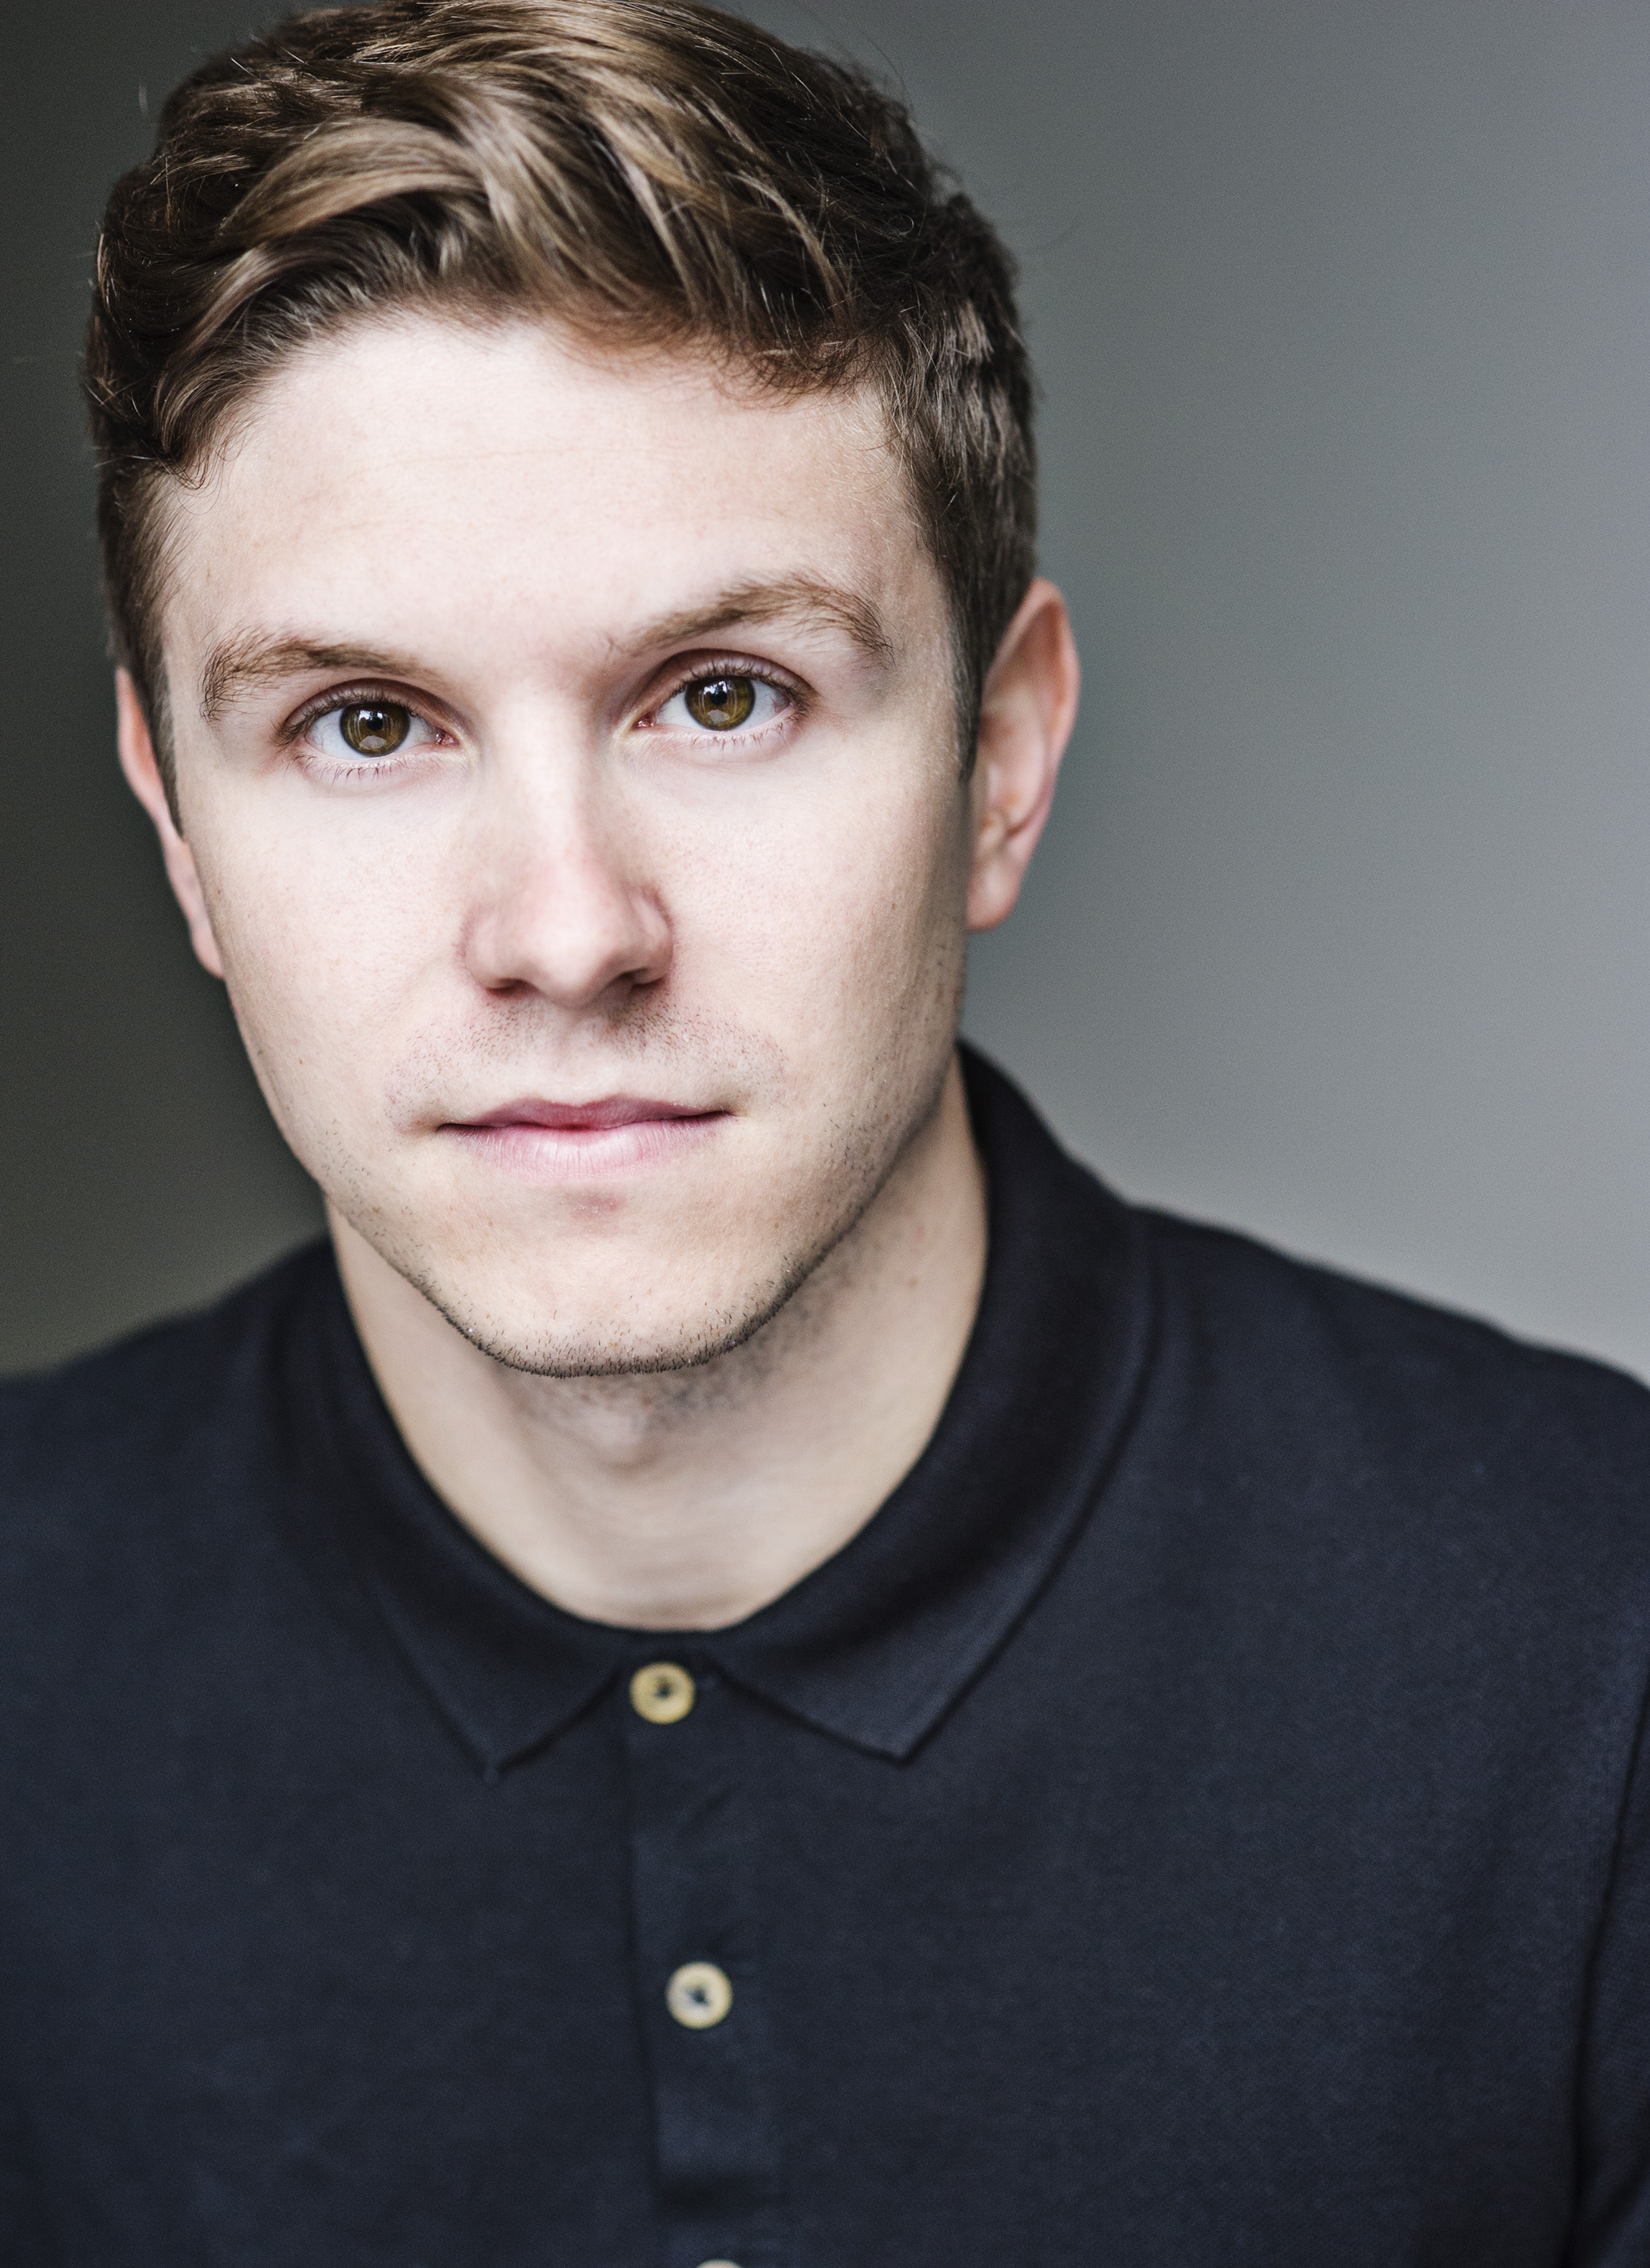 Craig Mather is performing in the all star concerts for Les Miserables, having previously played the role of Marius in The West End. -